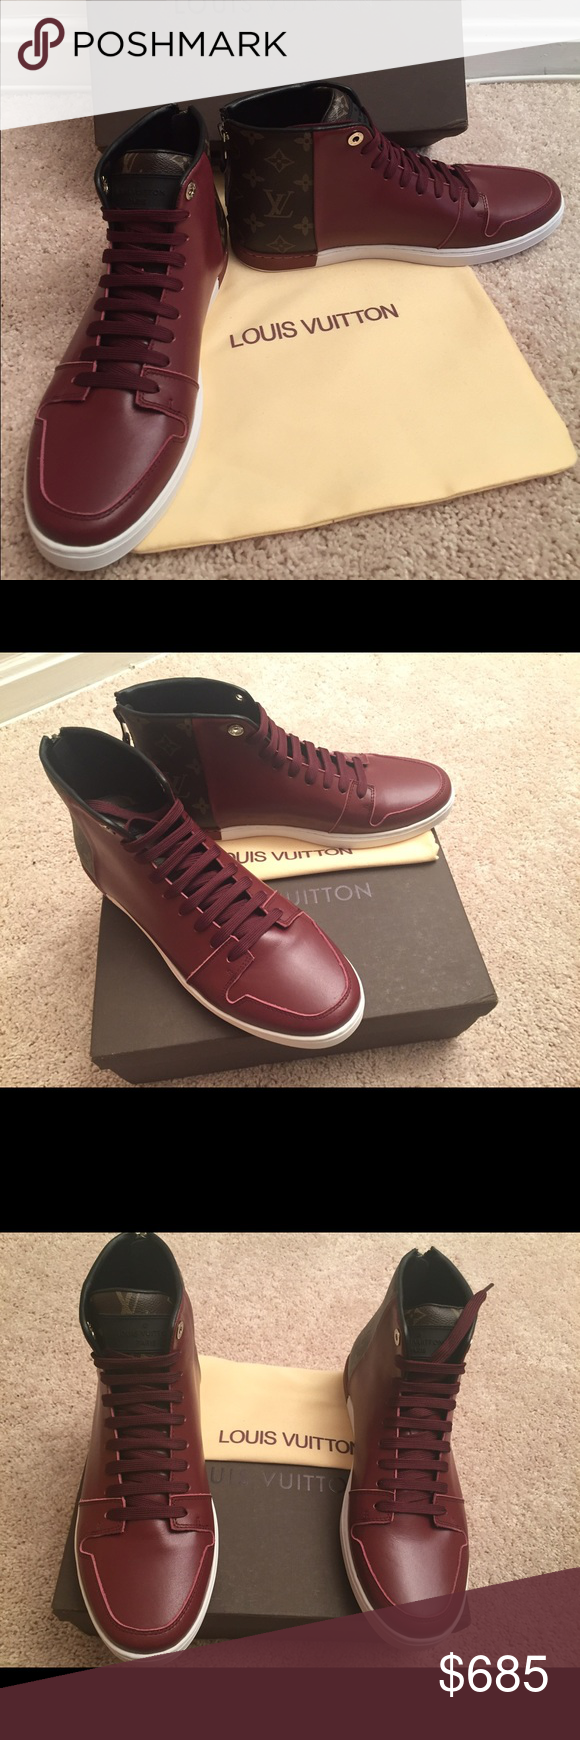 f404d8fc2d0 Leather Shoes · Louis Vuitton Line-Up Hightop Men Sneakers - Size 9 -  Brown Burgundy -